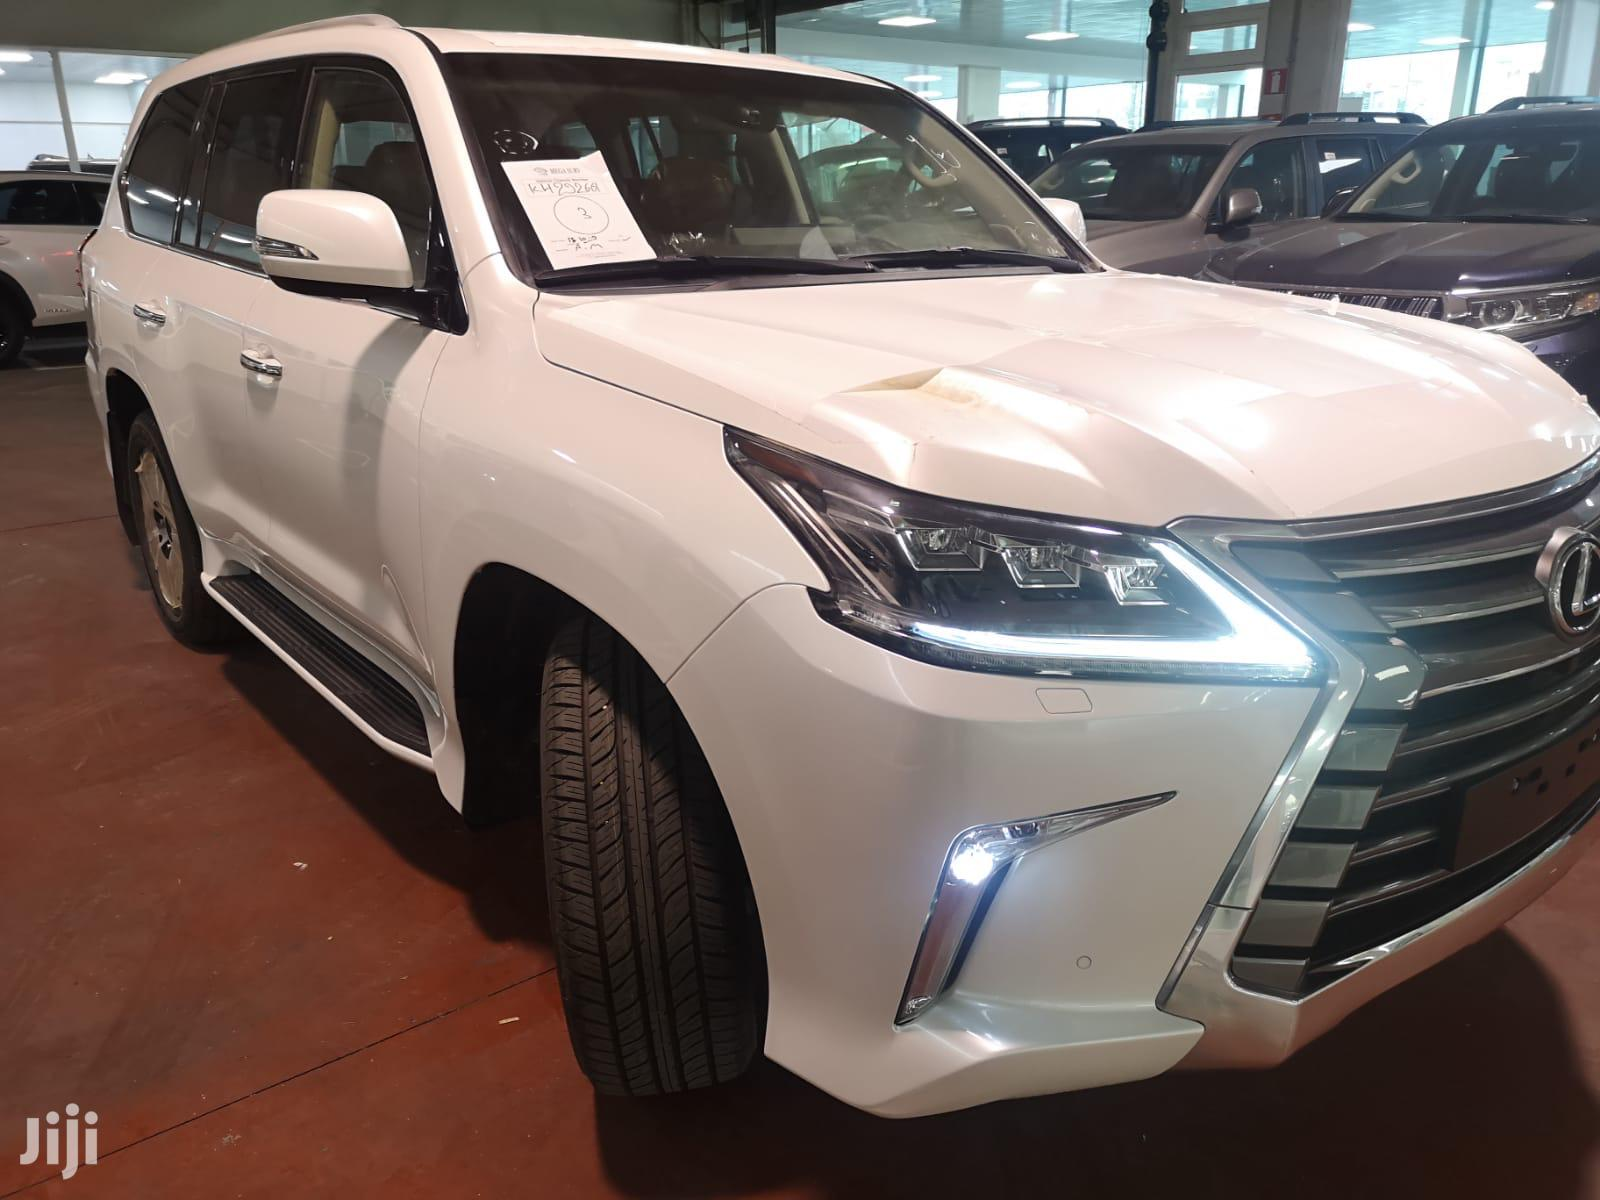 New Lexus Lx 570 2020 White In Achimota Cars Fii Fi Jiji Com Gh For Sale In Achimota Buy Cars From Fii Fi On Jiji Com Gh